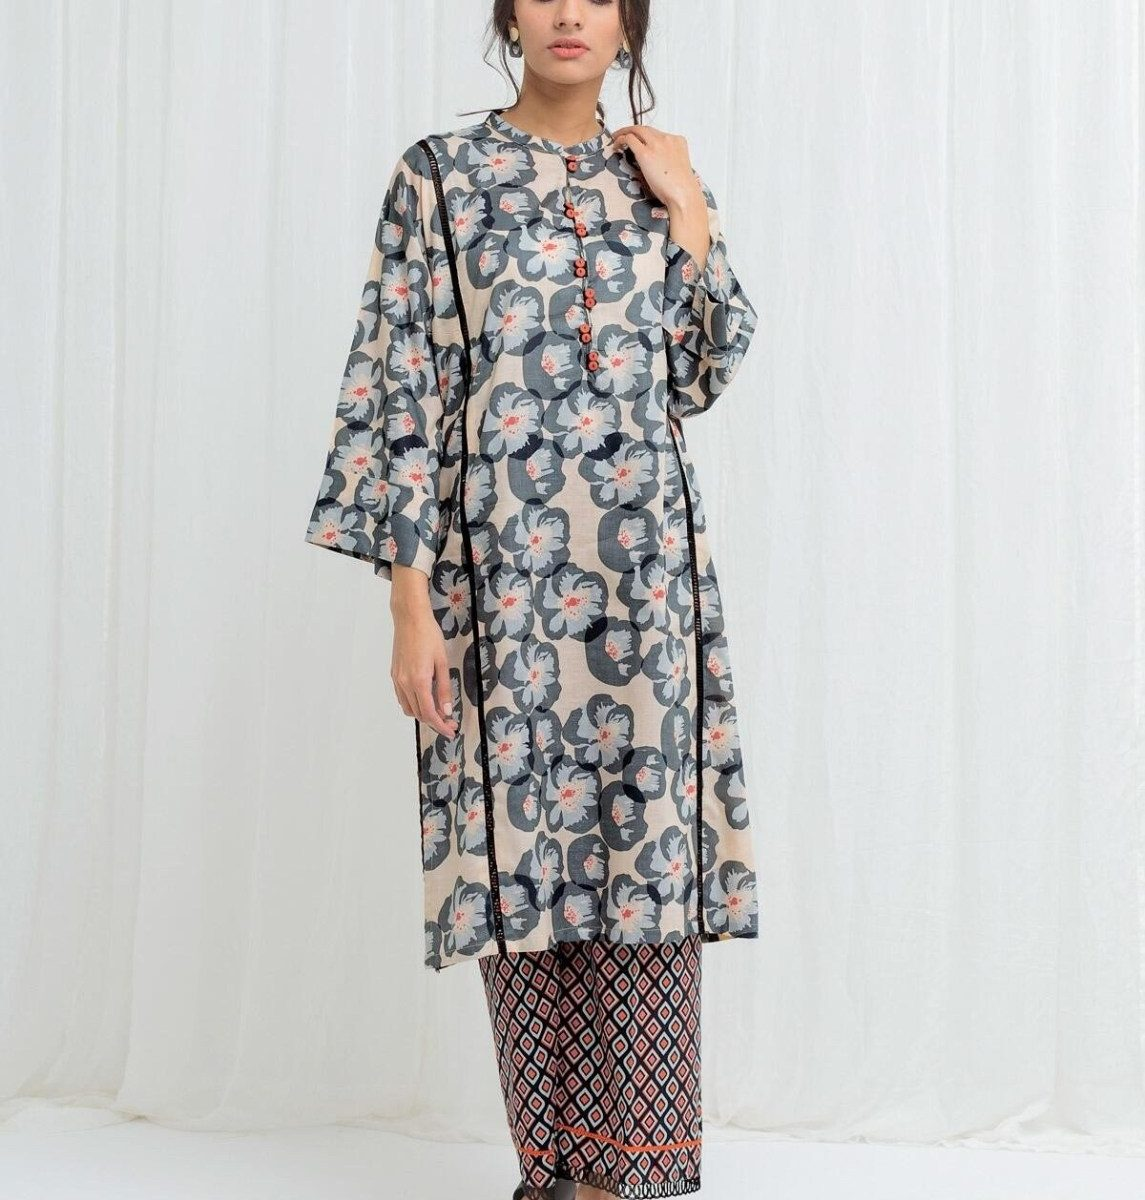 Awesome Beechtree Mid Summer Sale Upto 50% Dresses 2020